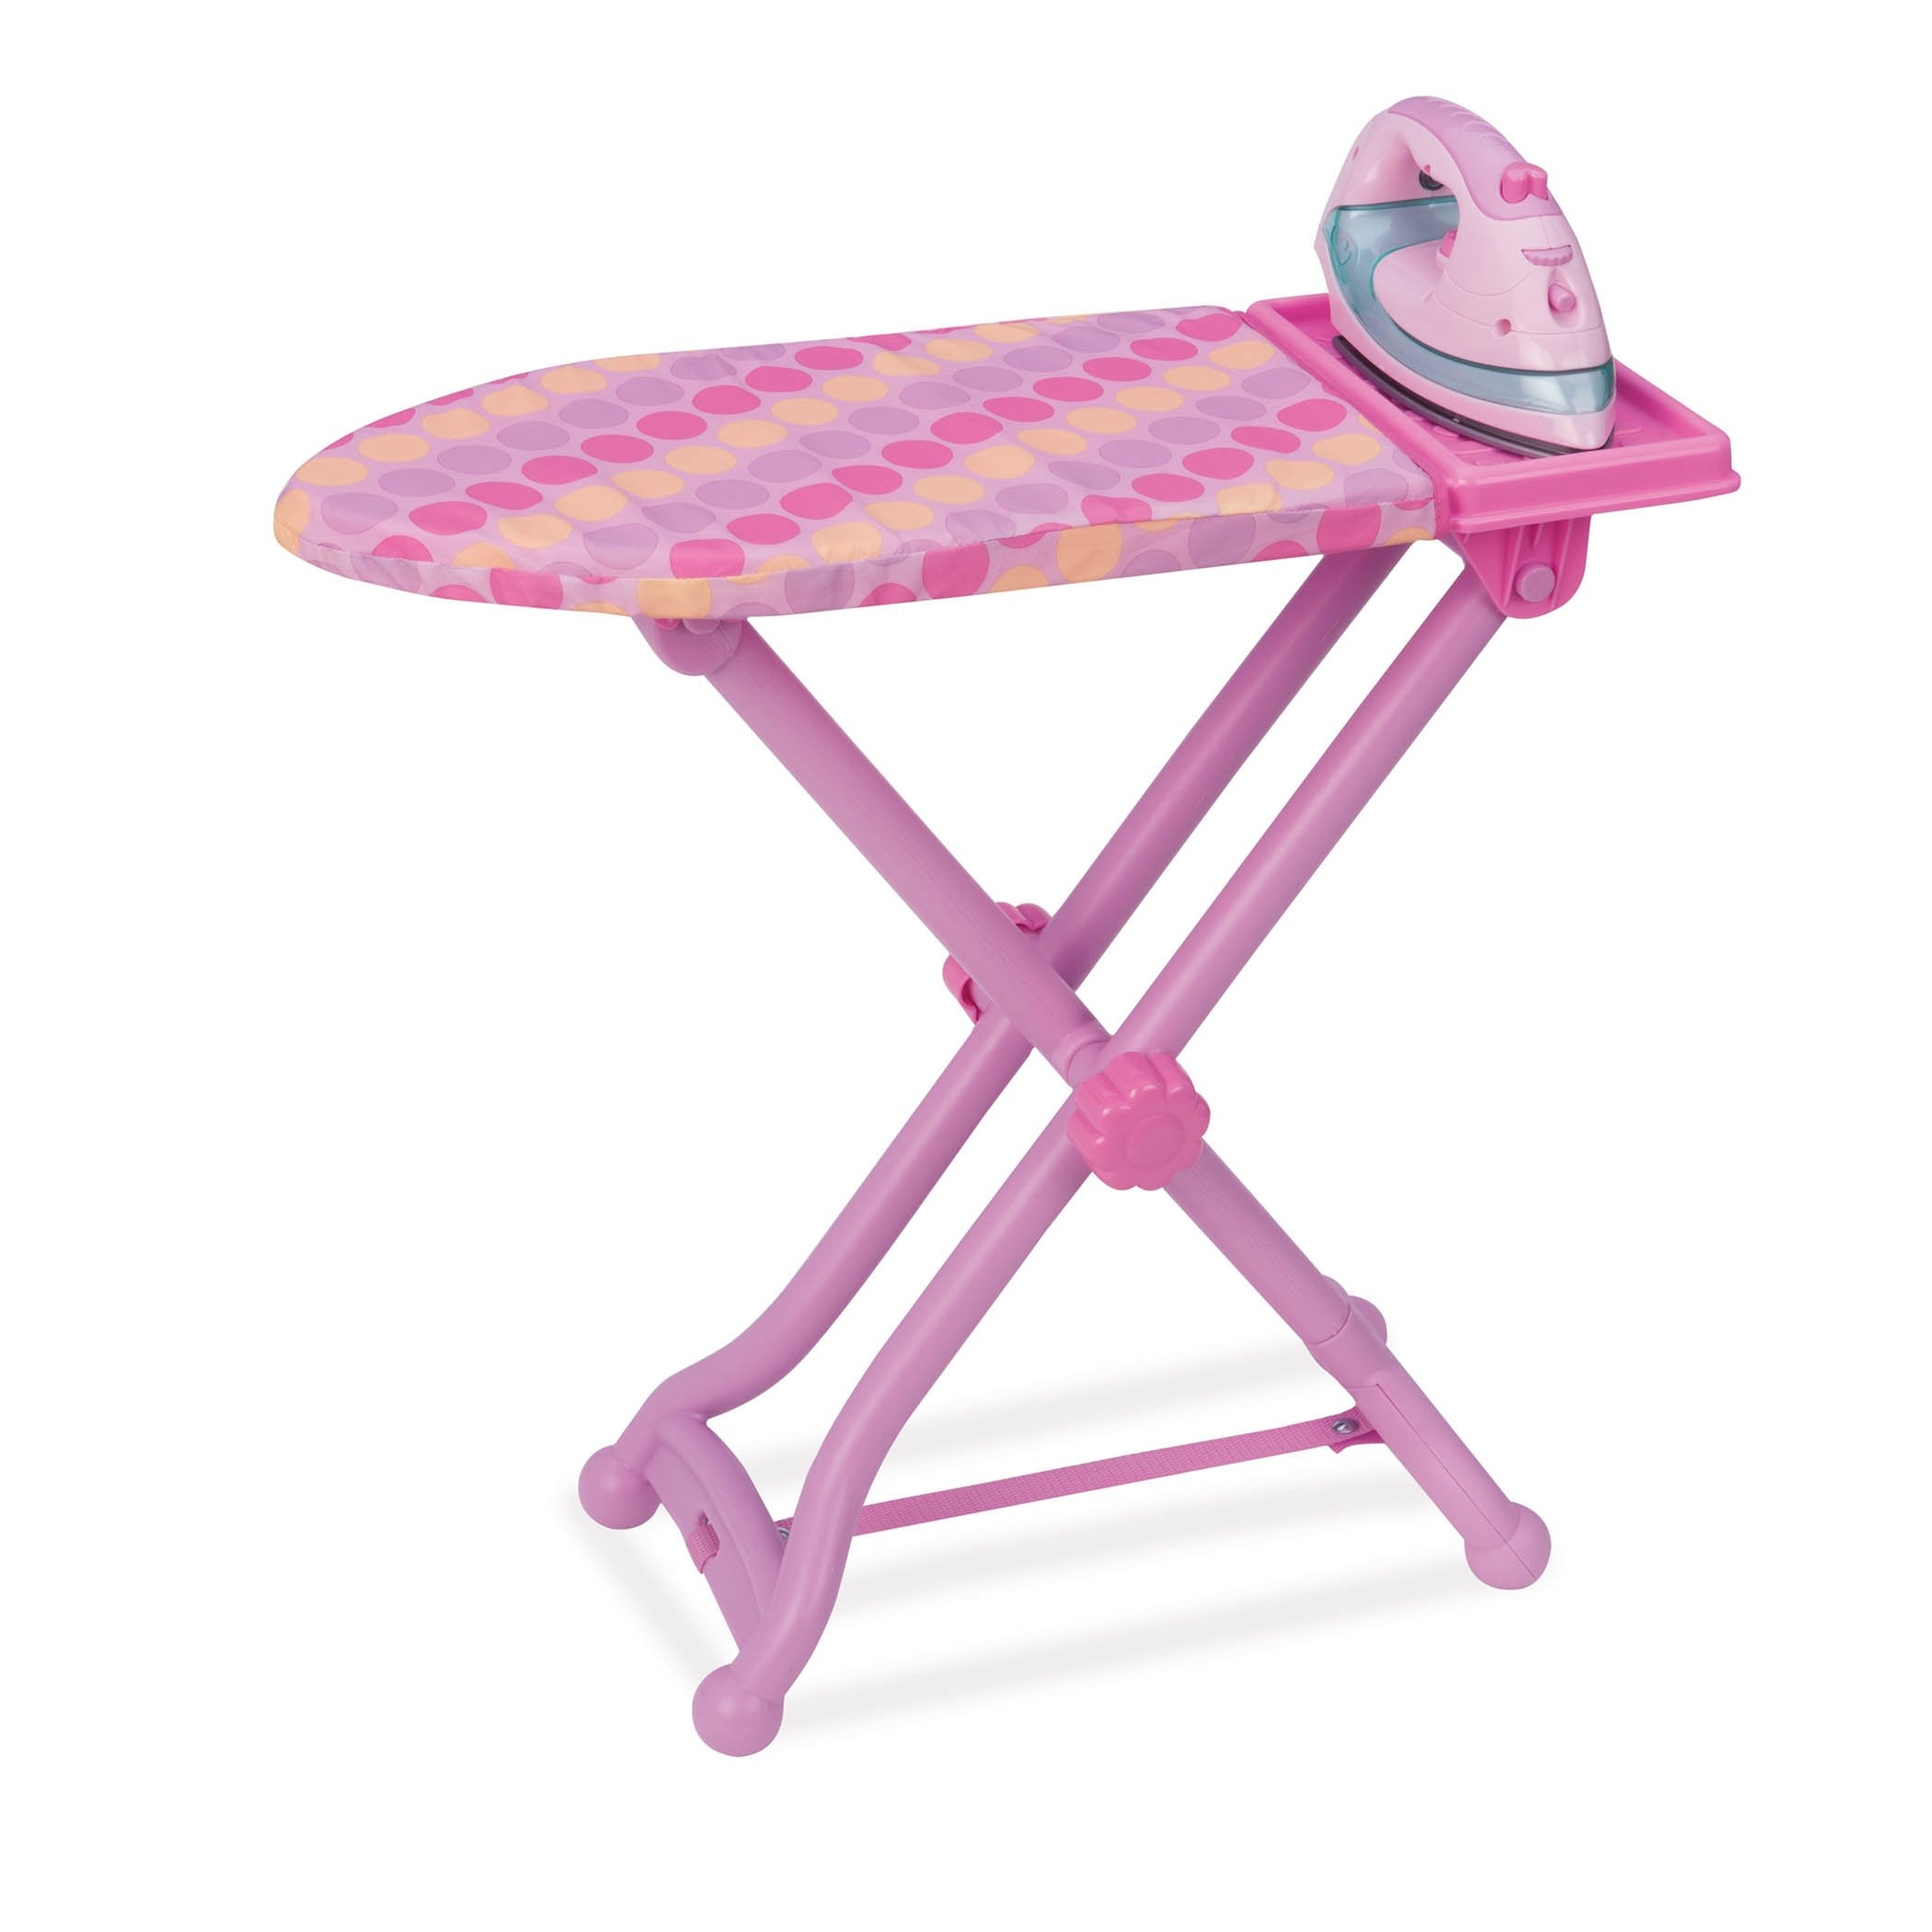 Play Circle by Battat – Best Pressed Ironing Board Set with Stand – Pink Iron with Working Light and Steam Sounds for Pretend Play House – Toy Cleaning Accessories for Kids Ages 3 and Up (3 Pieces)